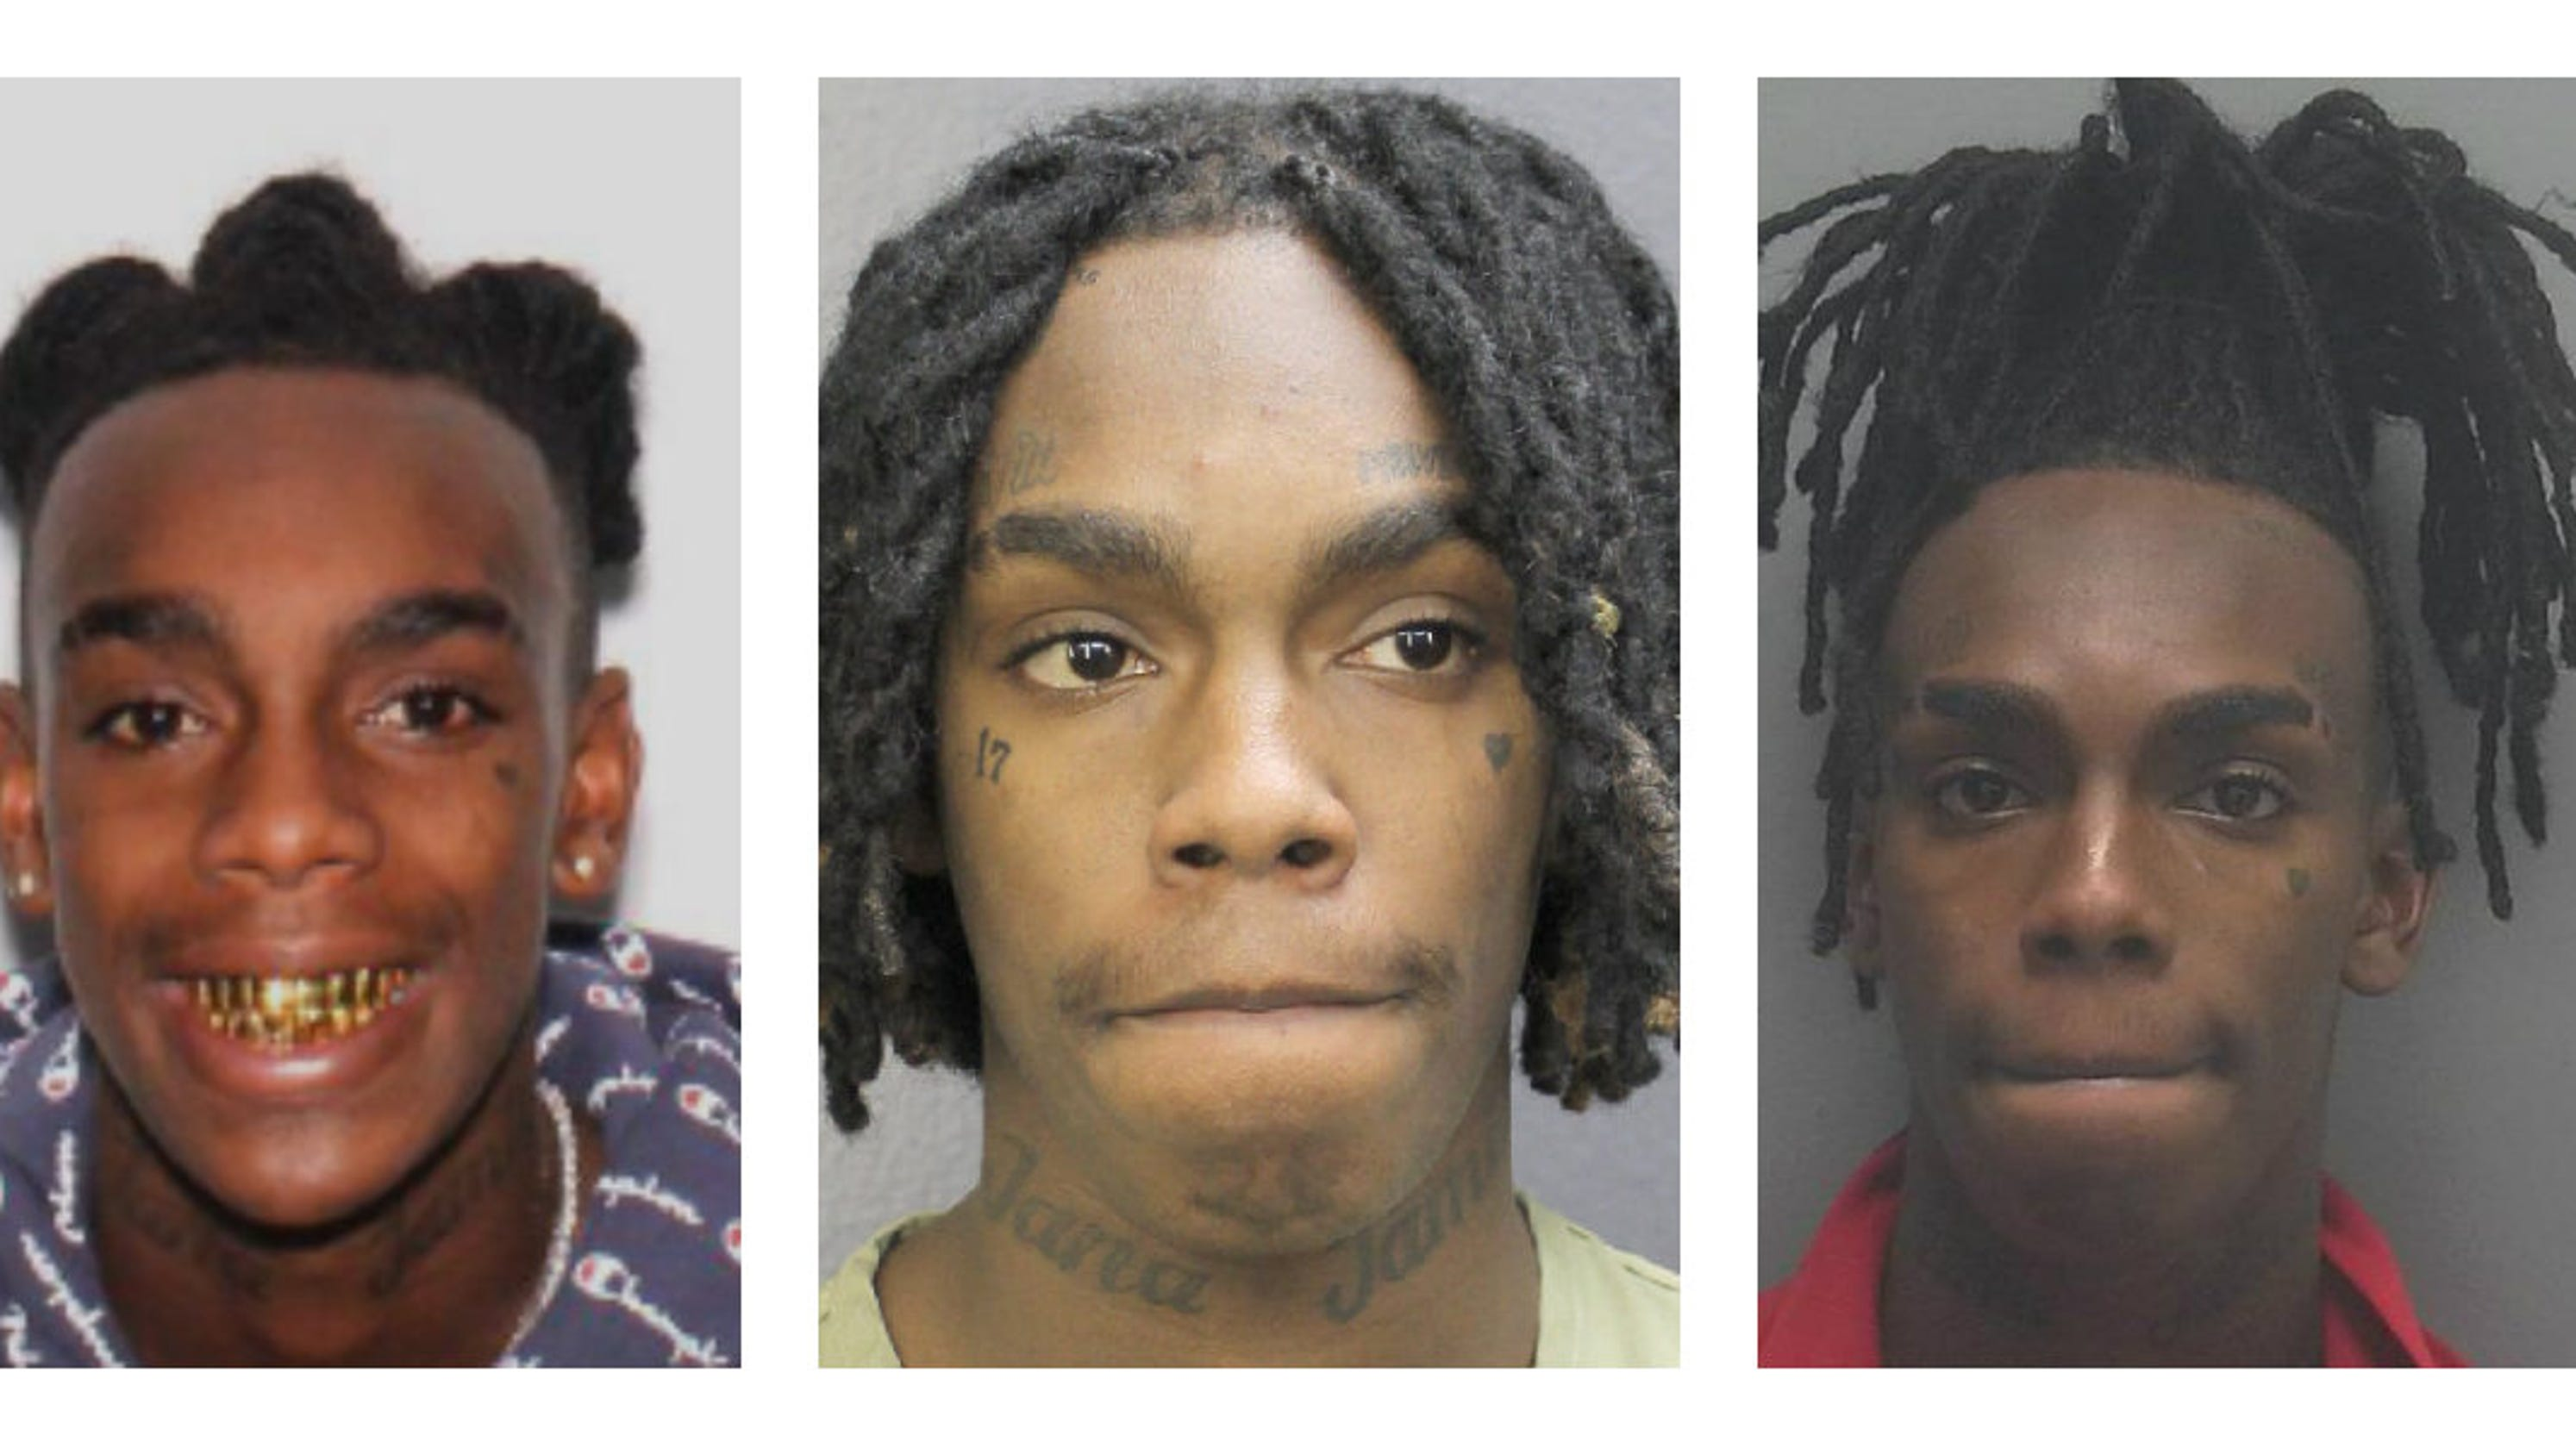 YNW Melly murder charges: The full story